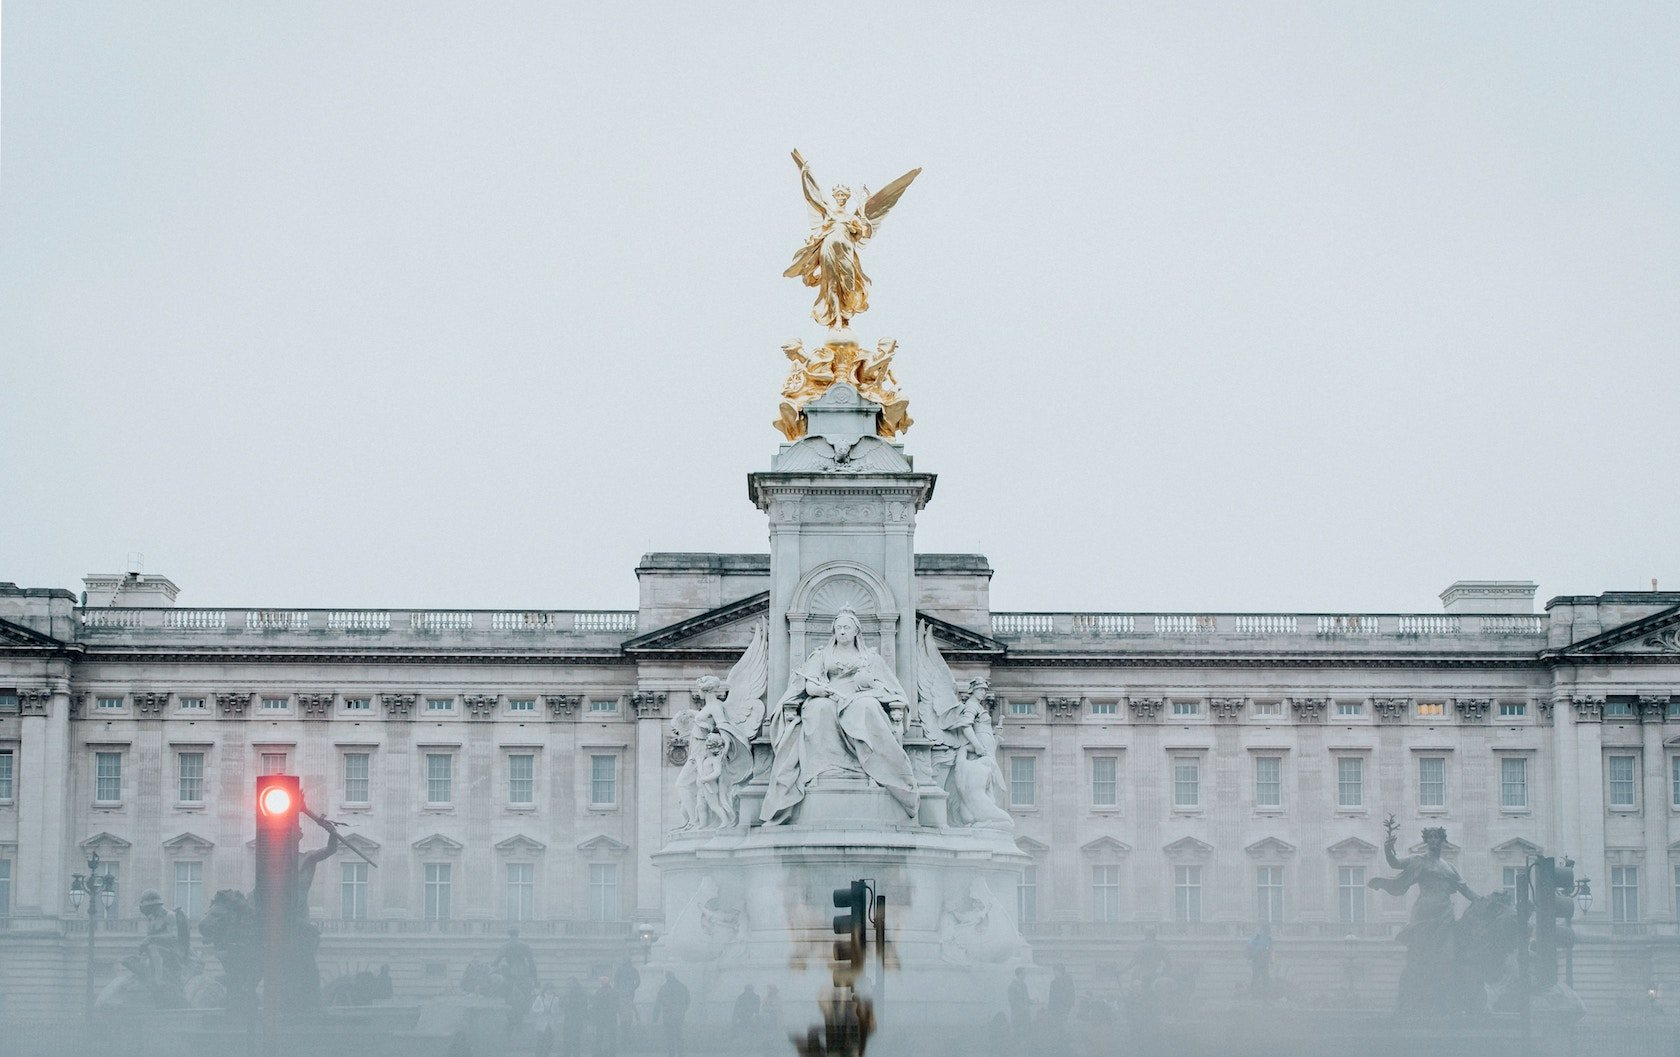 London's best monuments by London Perfect